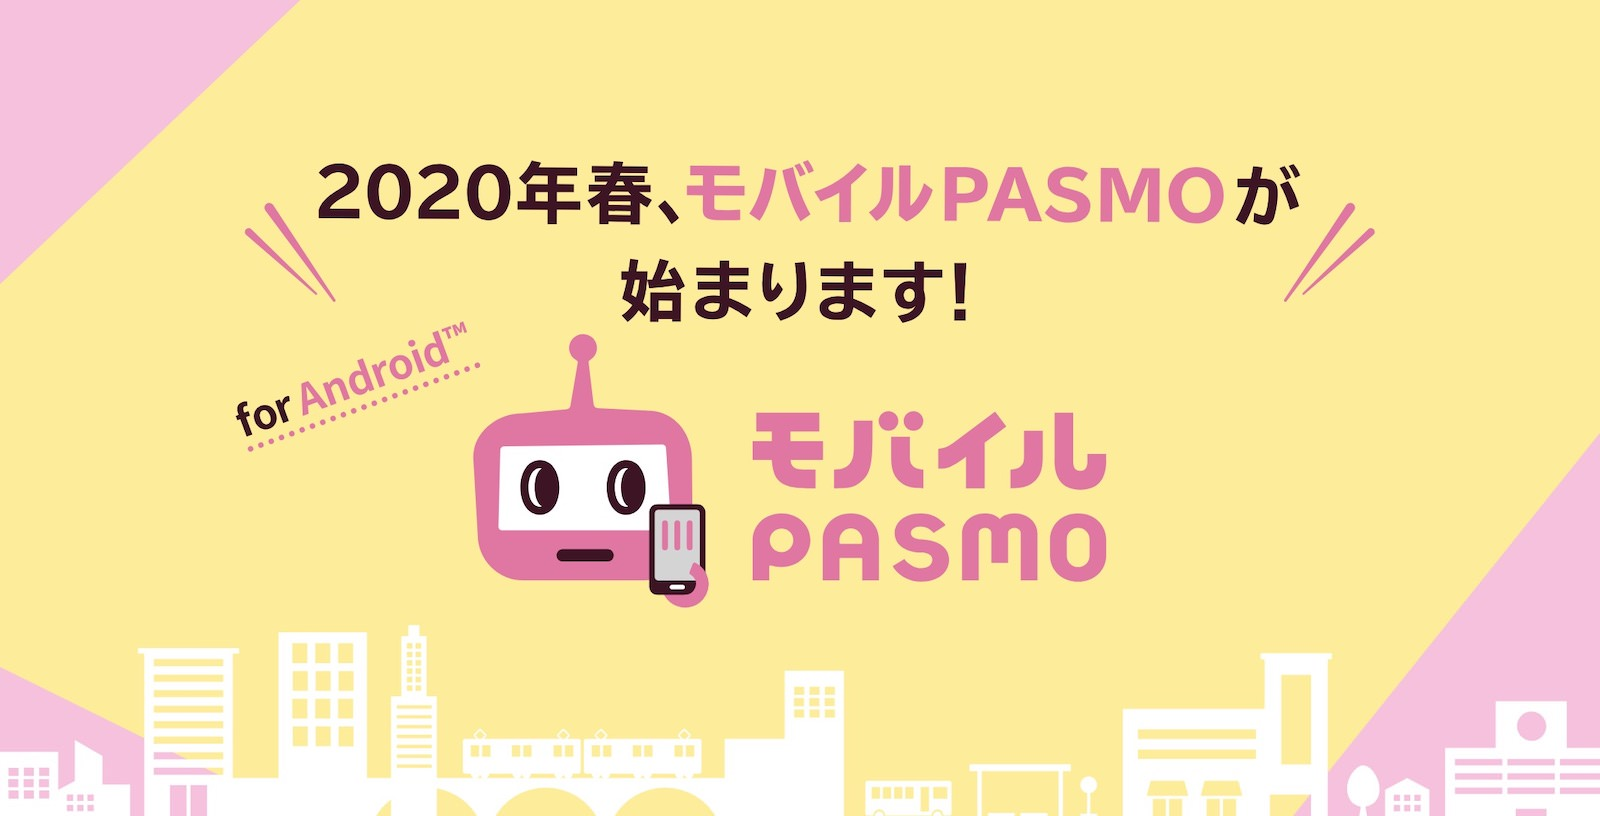 Mobile pasmo for android